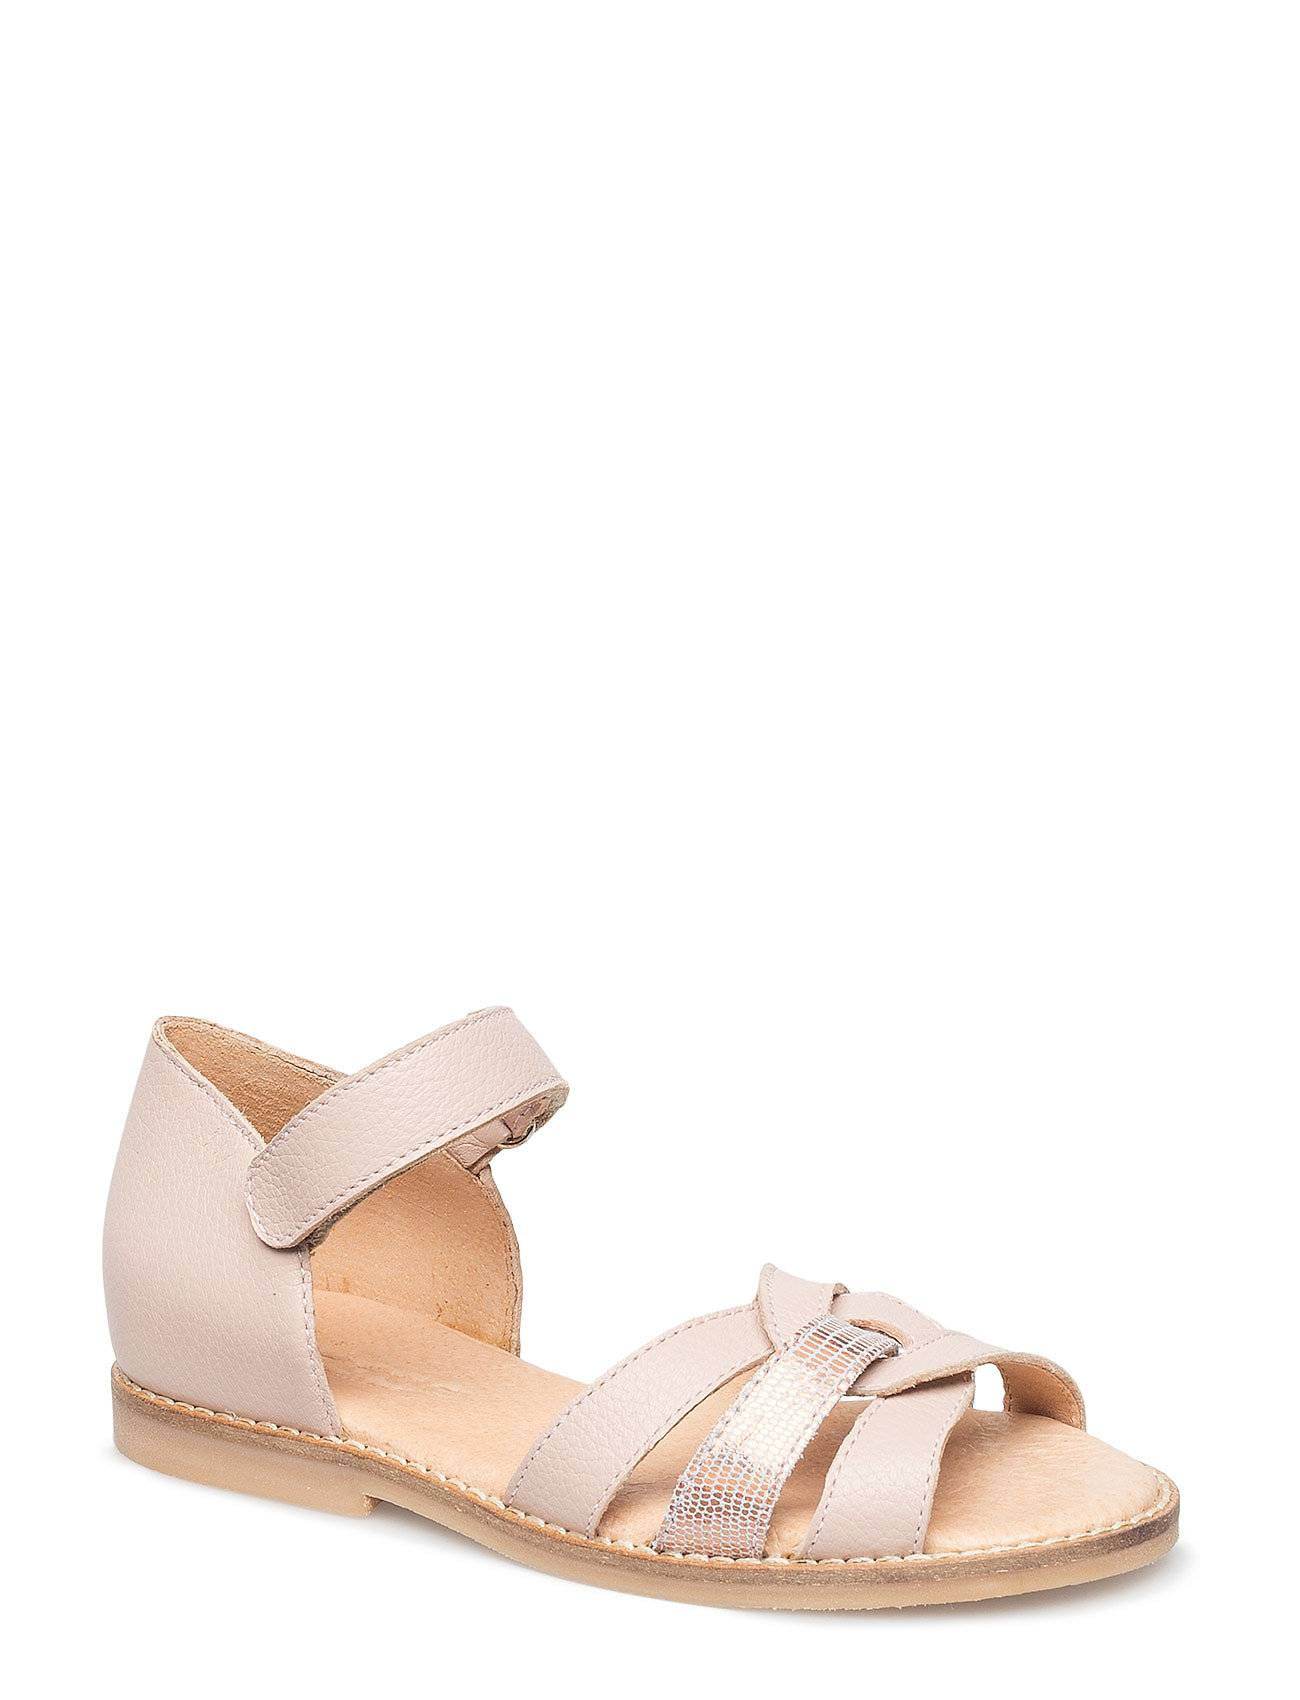 Move by Melton Girls - Sandal With Velcro